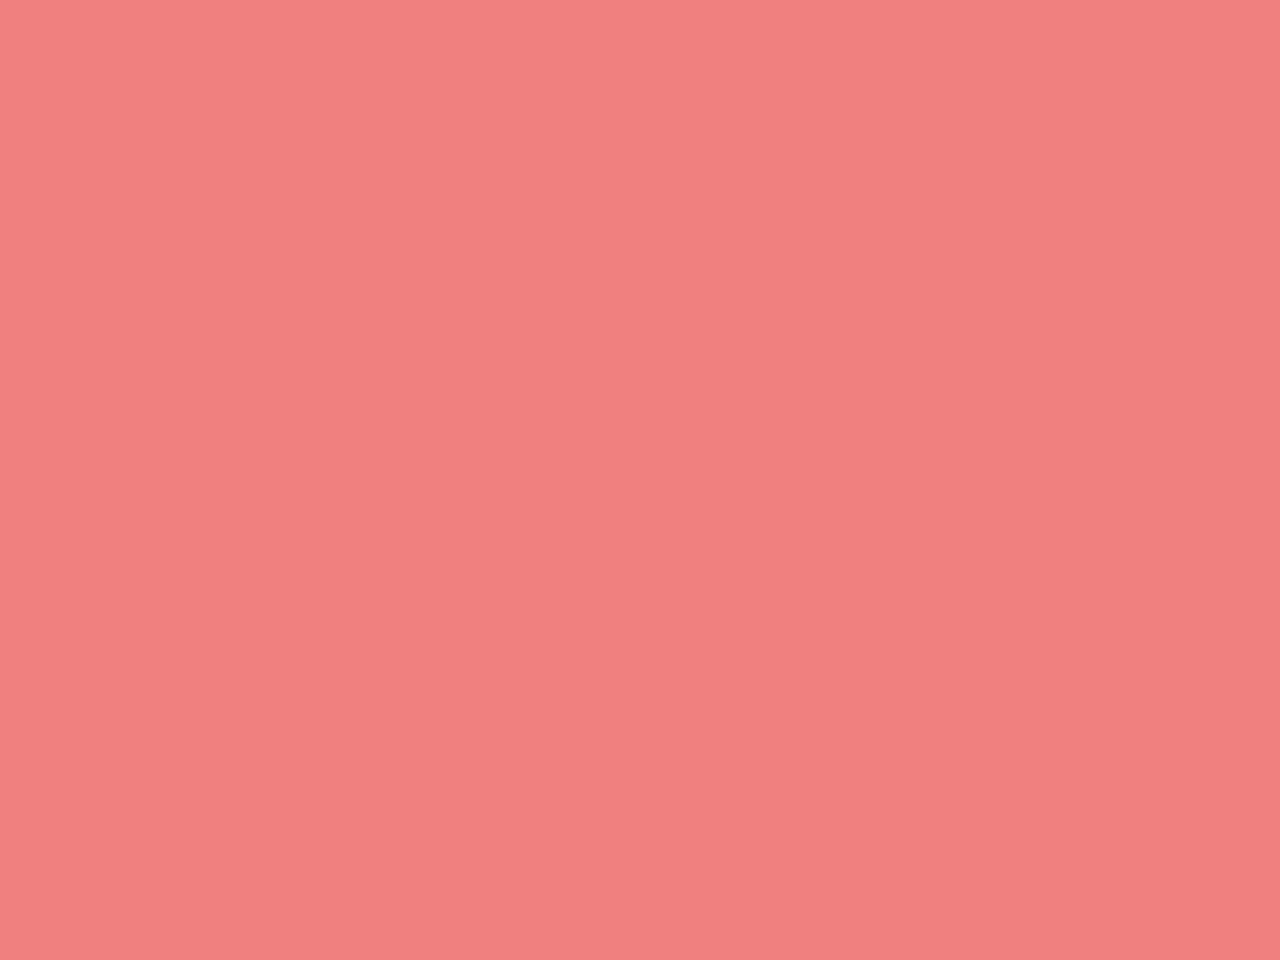 1280x960 Light Coral Solid Color Background